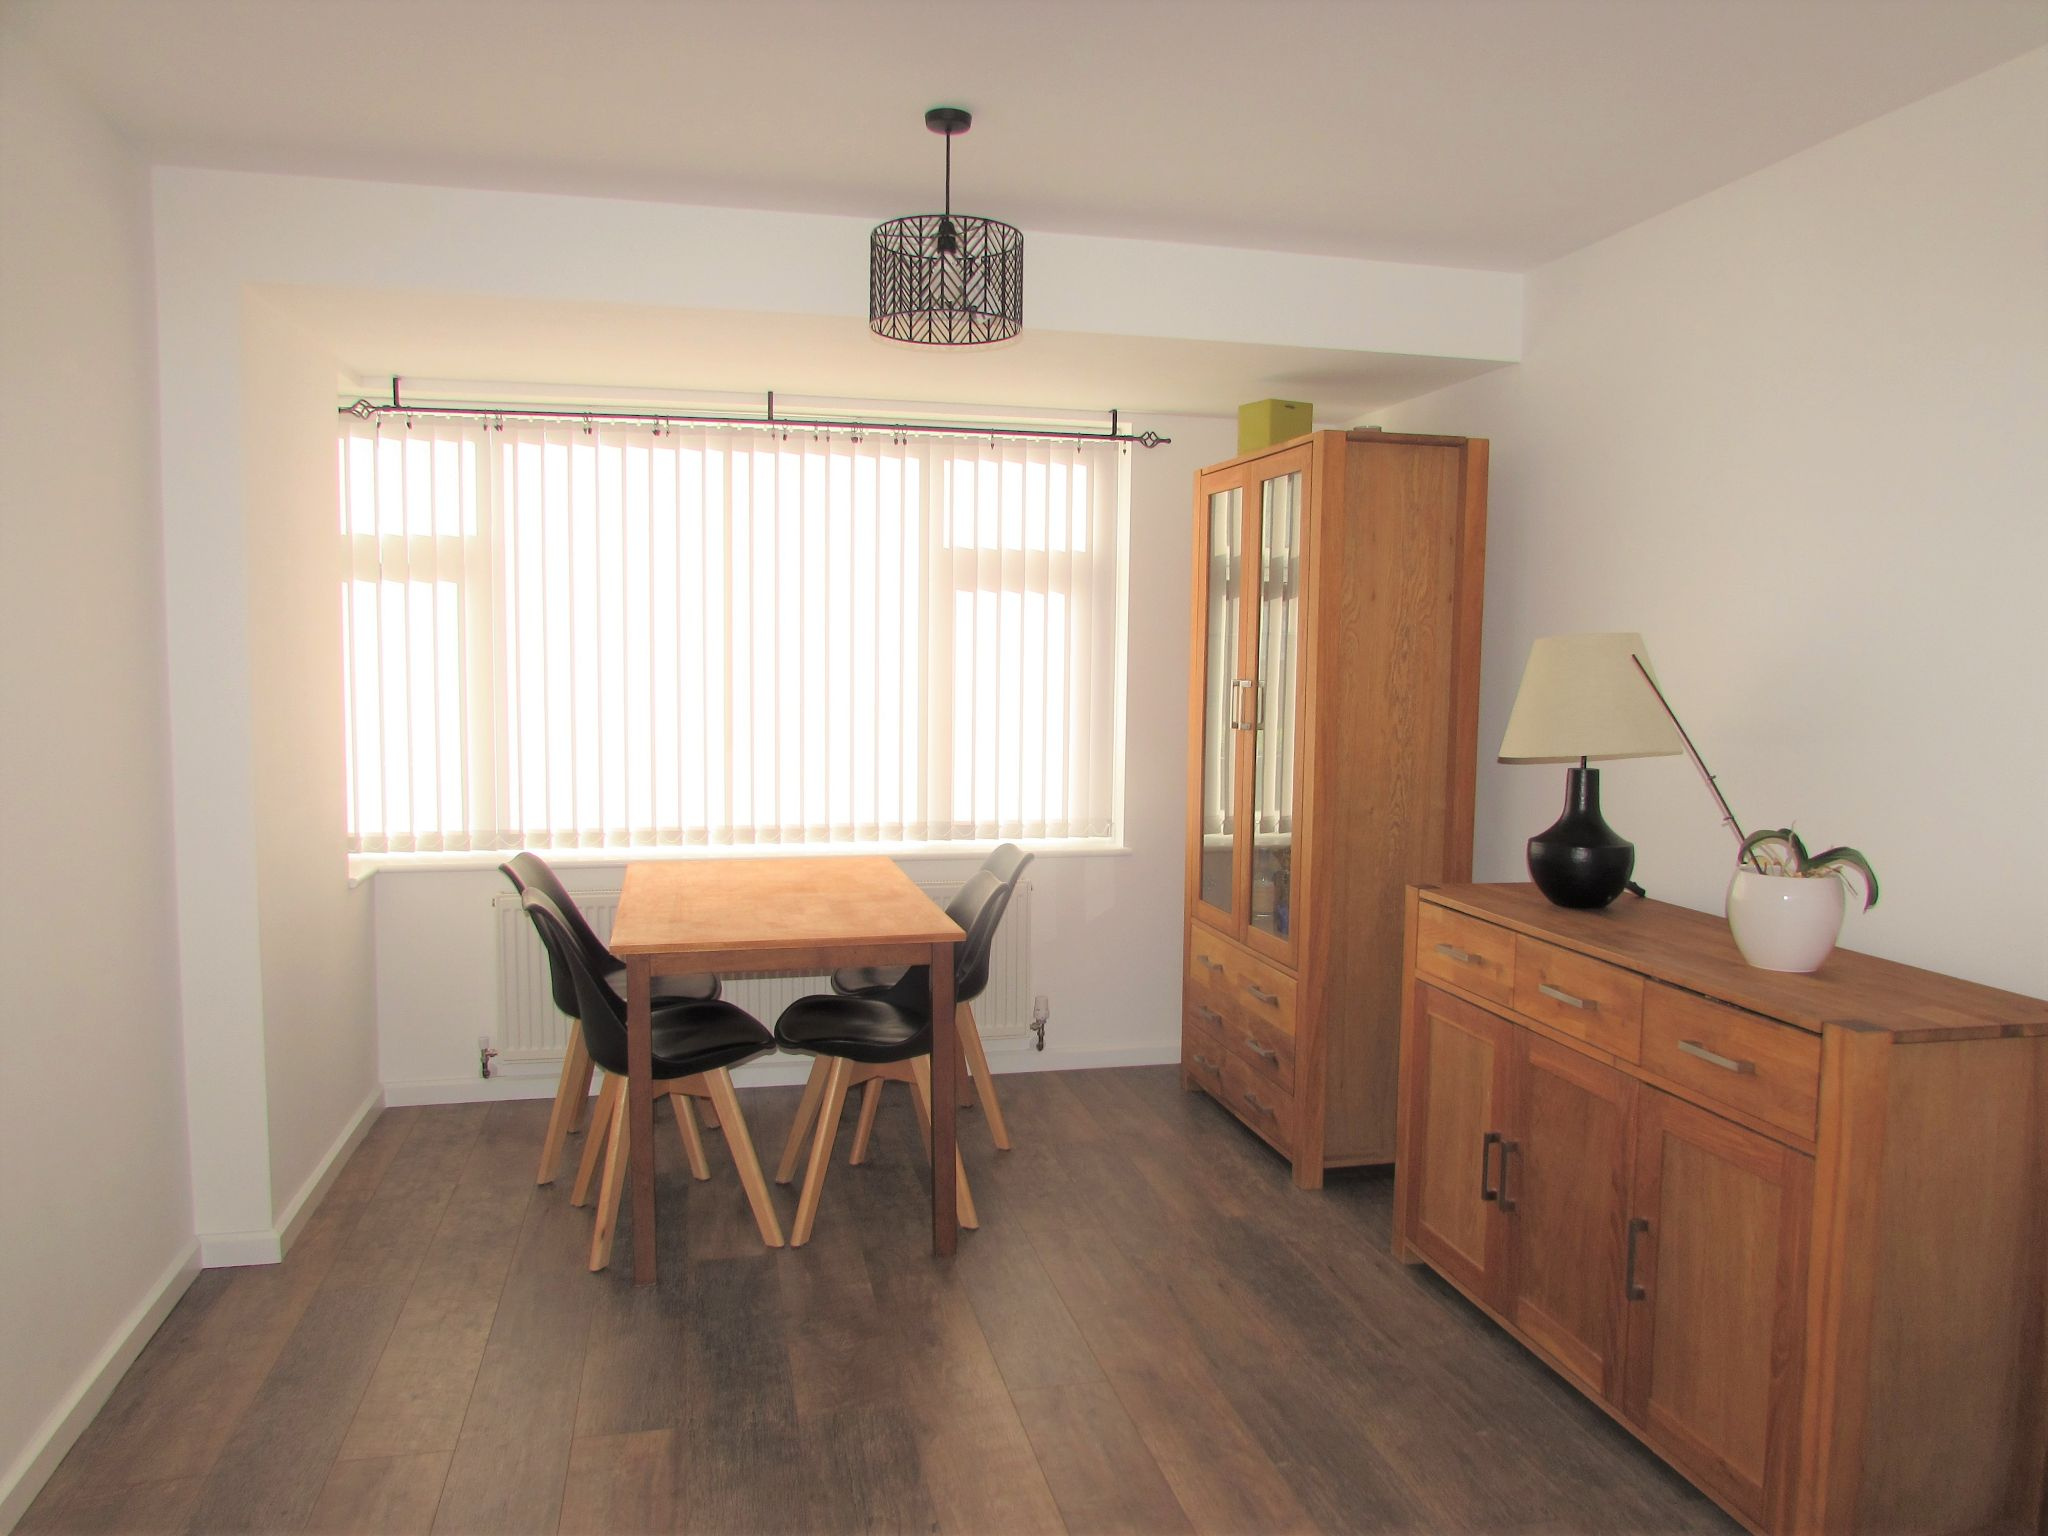 3 Bedroom Semi-detached House To Rent - DINING ROOM